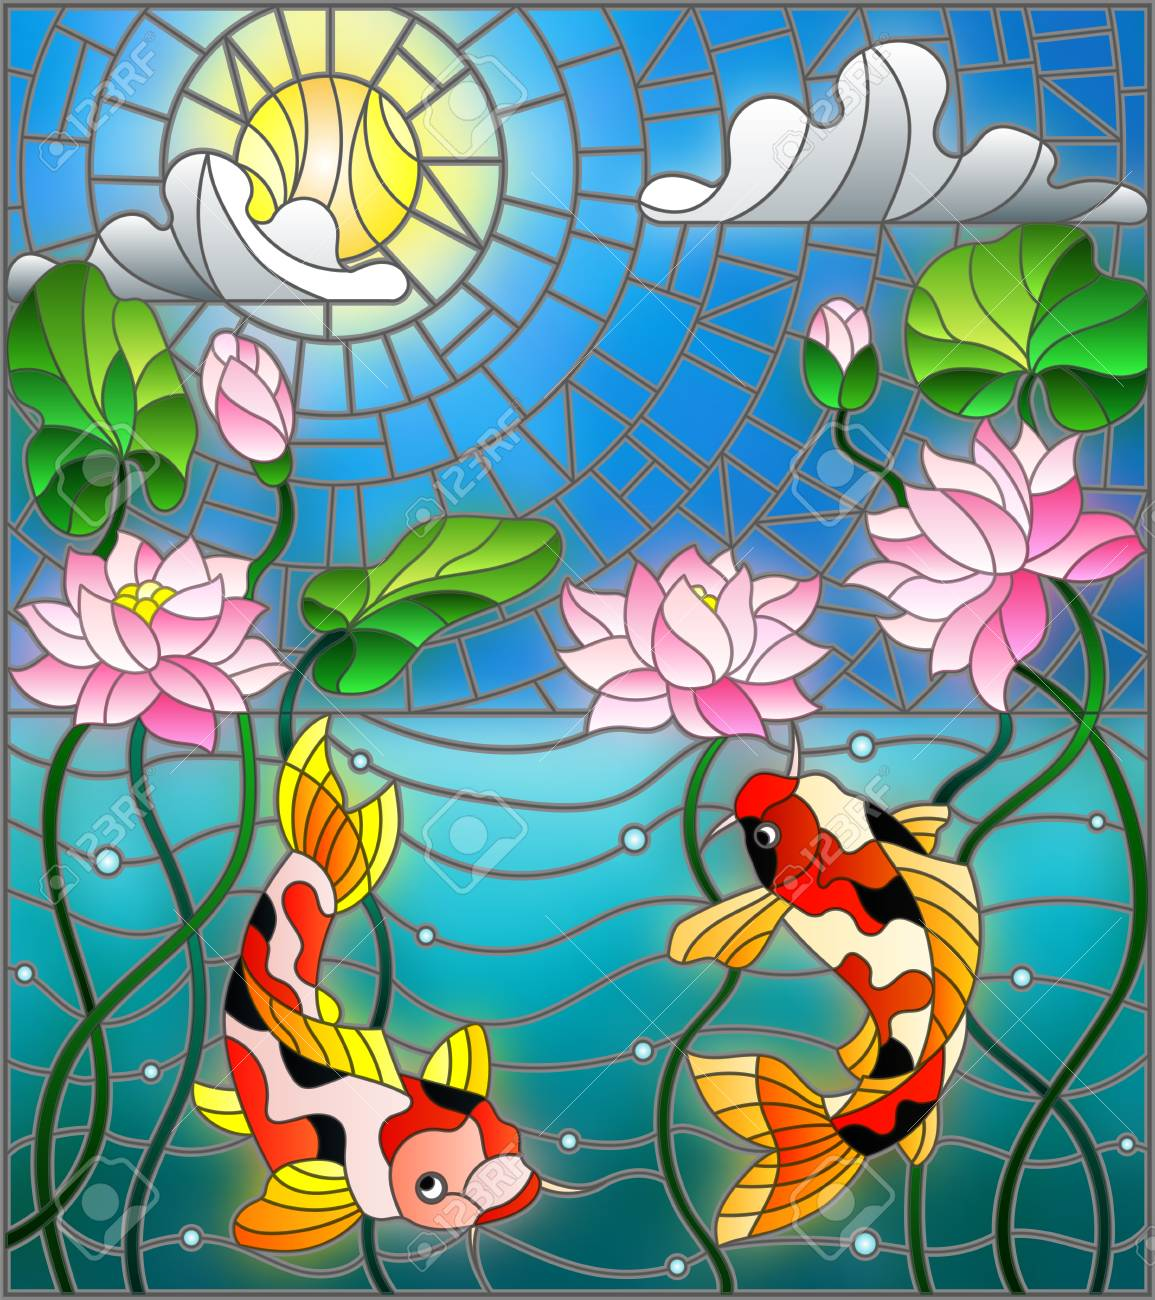 Illustration In Stained Glass Style With Koi Fish And Lotus Flowers